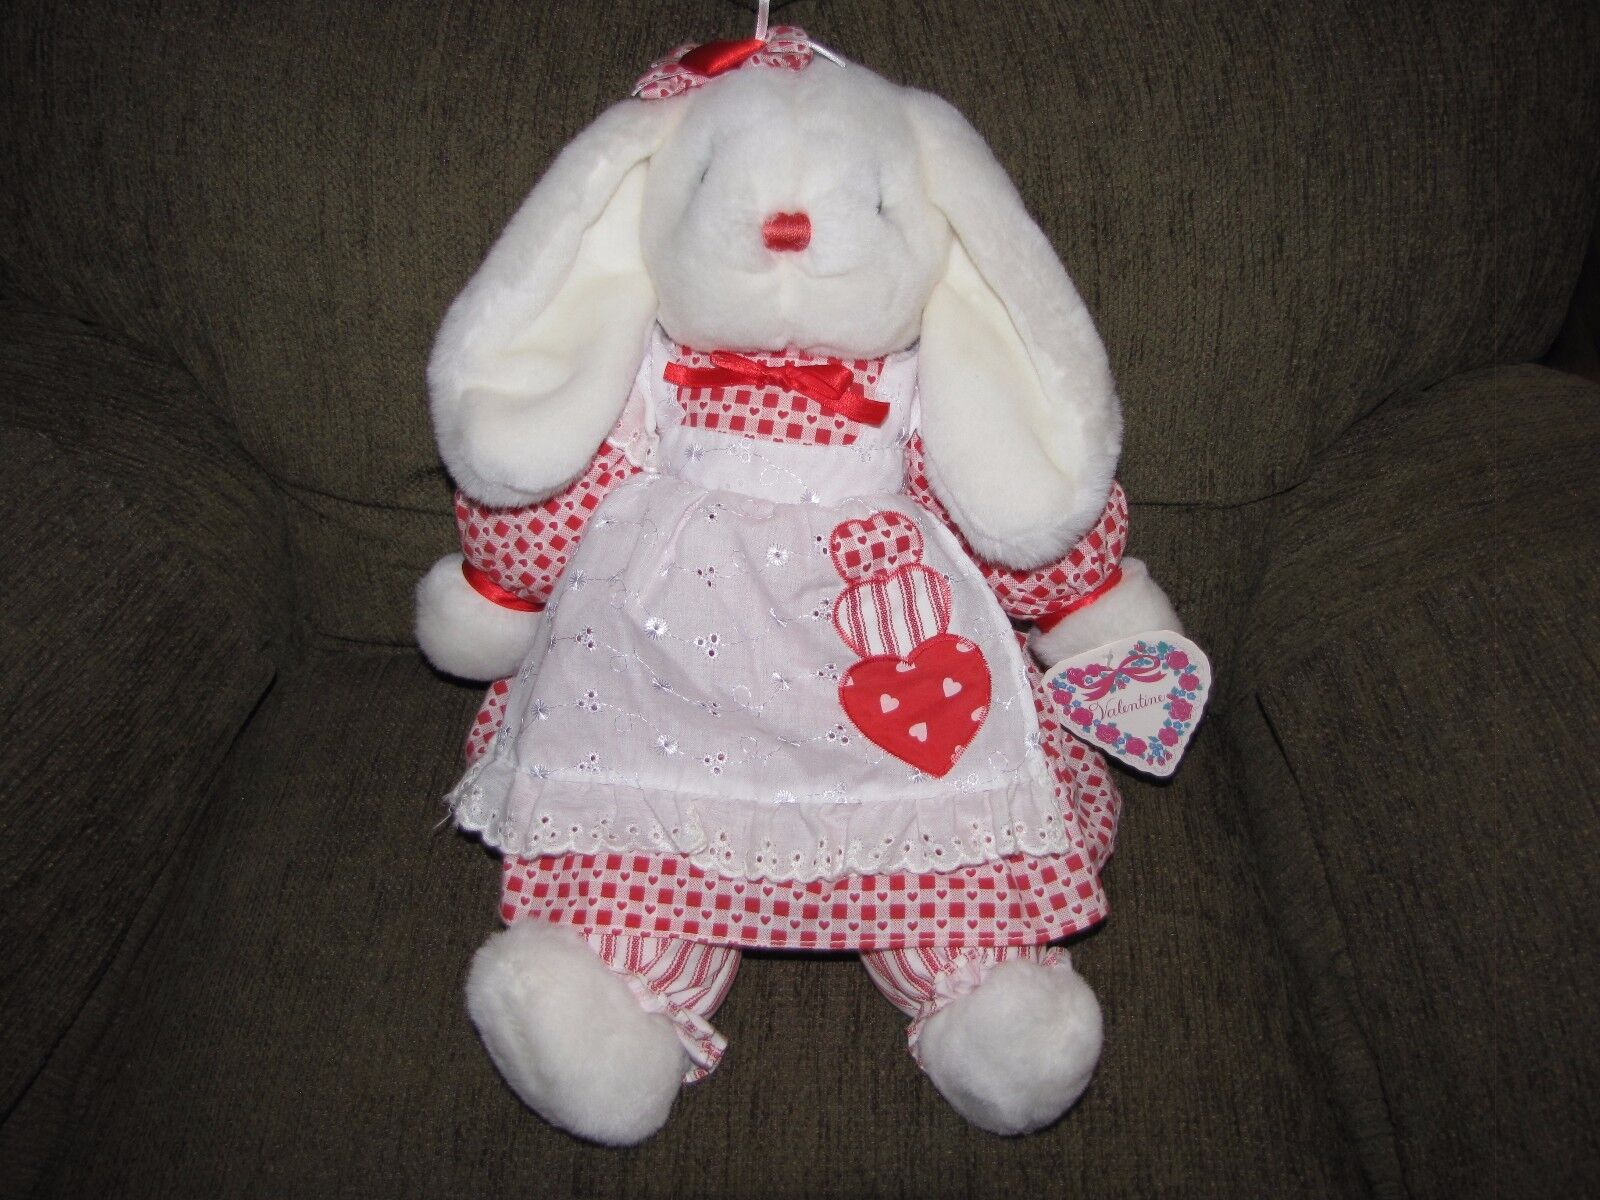 1995 FORDLET INTERNATIONAL LTD KMART VALENTINE BUNNY RABBIT STUFFED PLUSH NWT